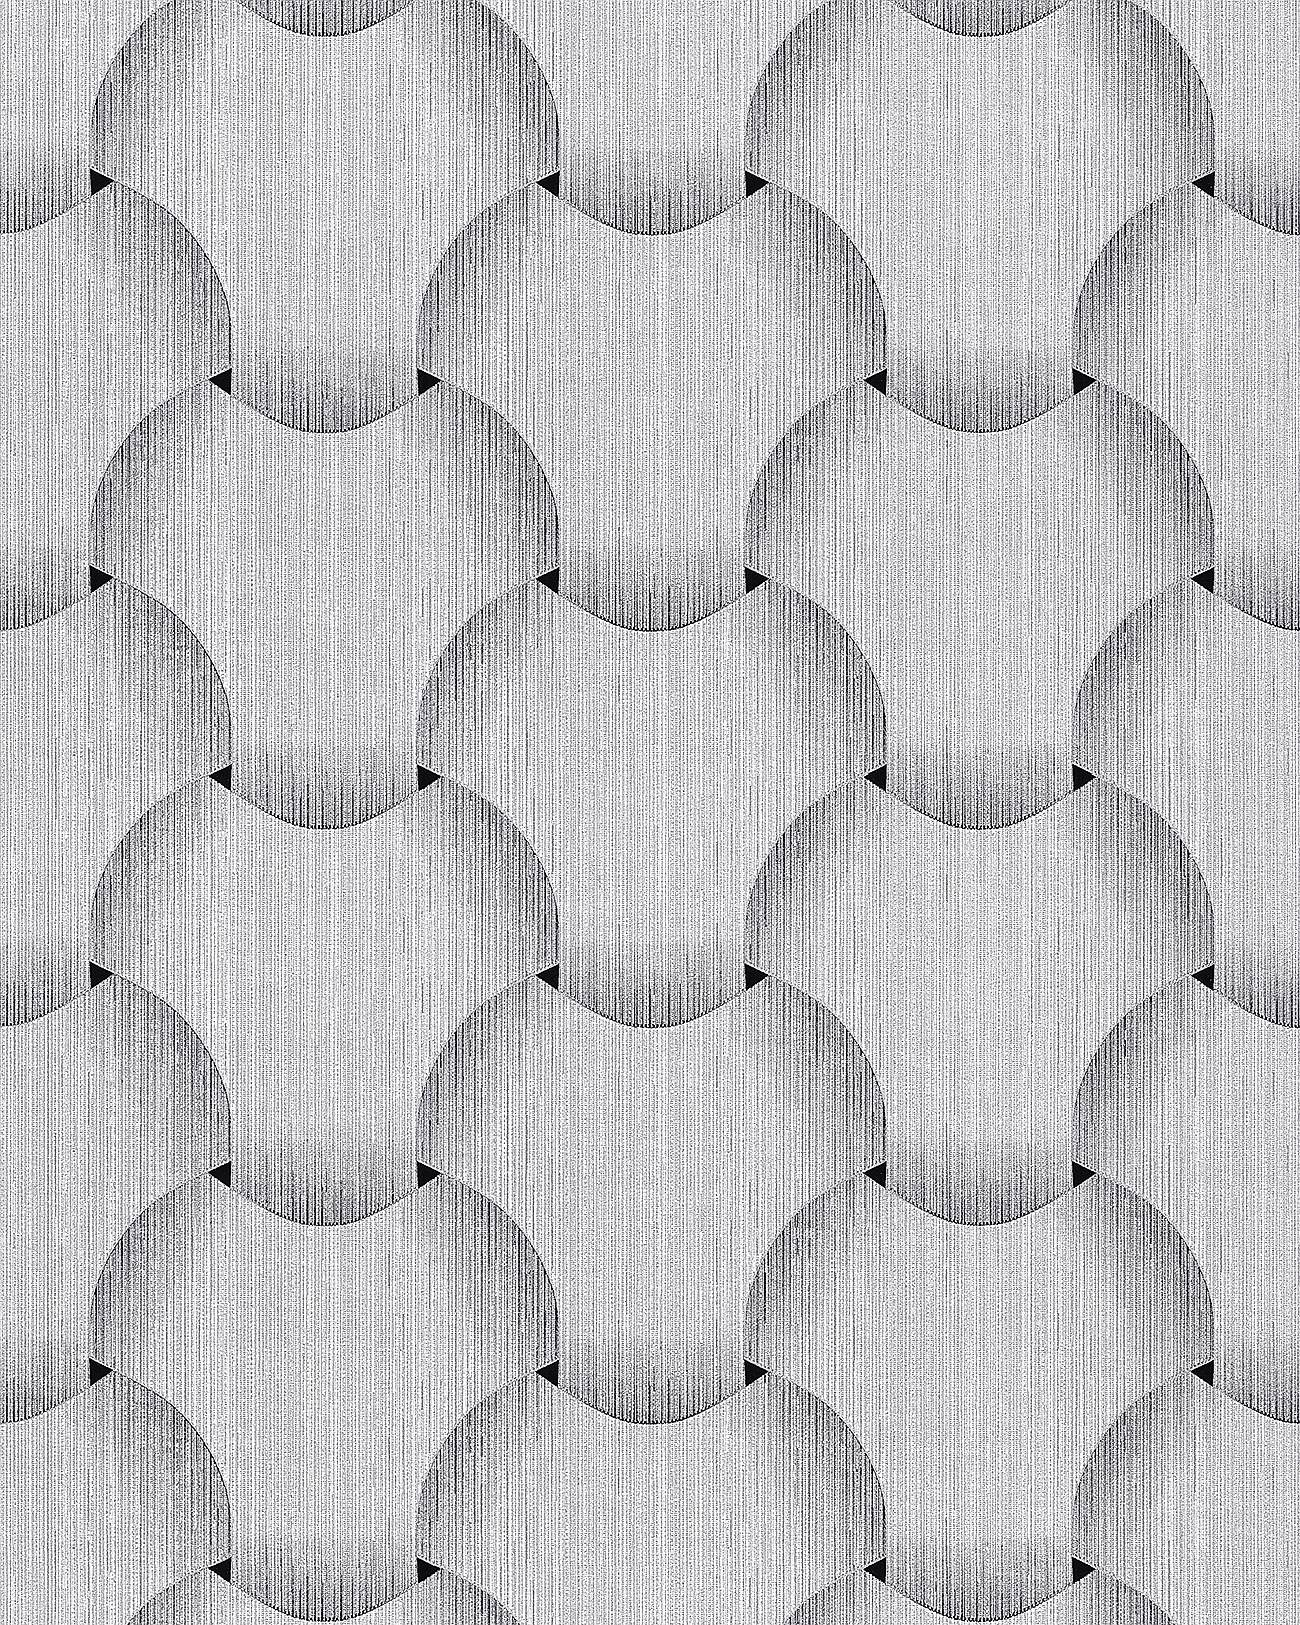 Retro Wallpaper Wall Edem 1035 10 Vinyl Wallcovering Textured With Graphical Pattern Glittering Silver Gray White 5 33 M2 57 Ft2